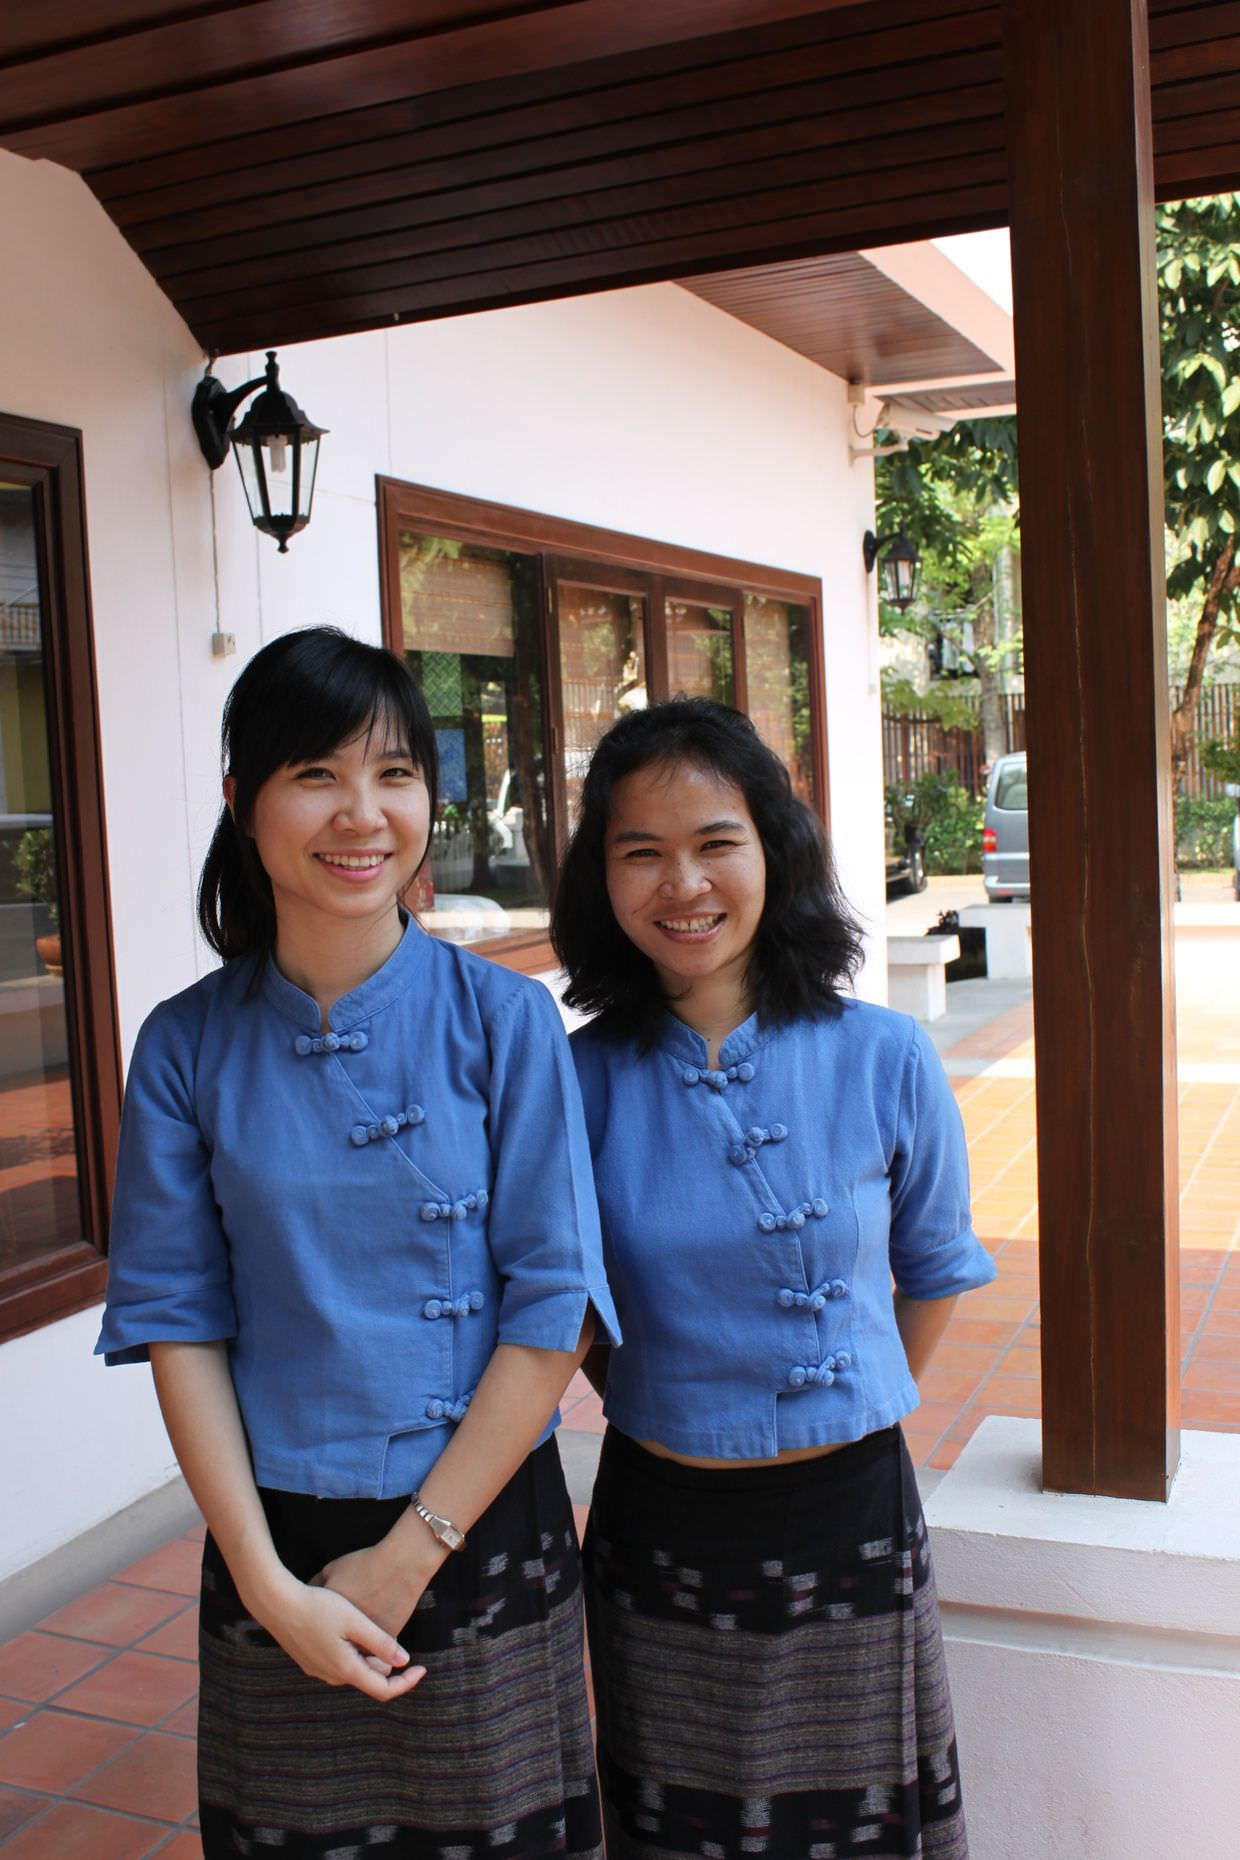 Rimping Village's lovely receptionists